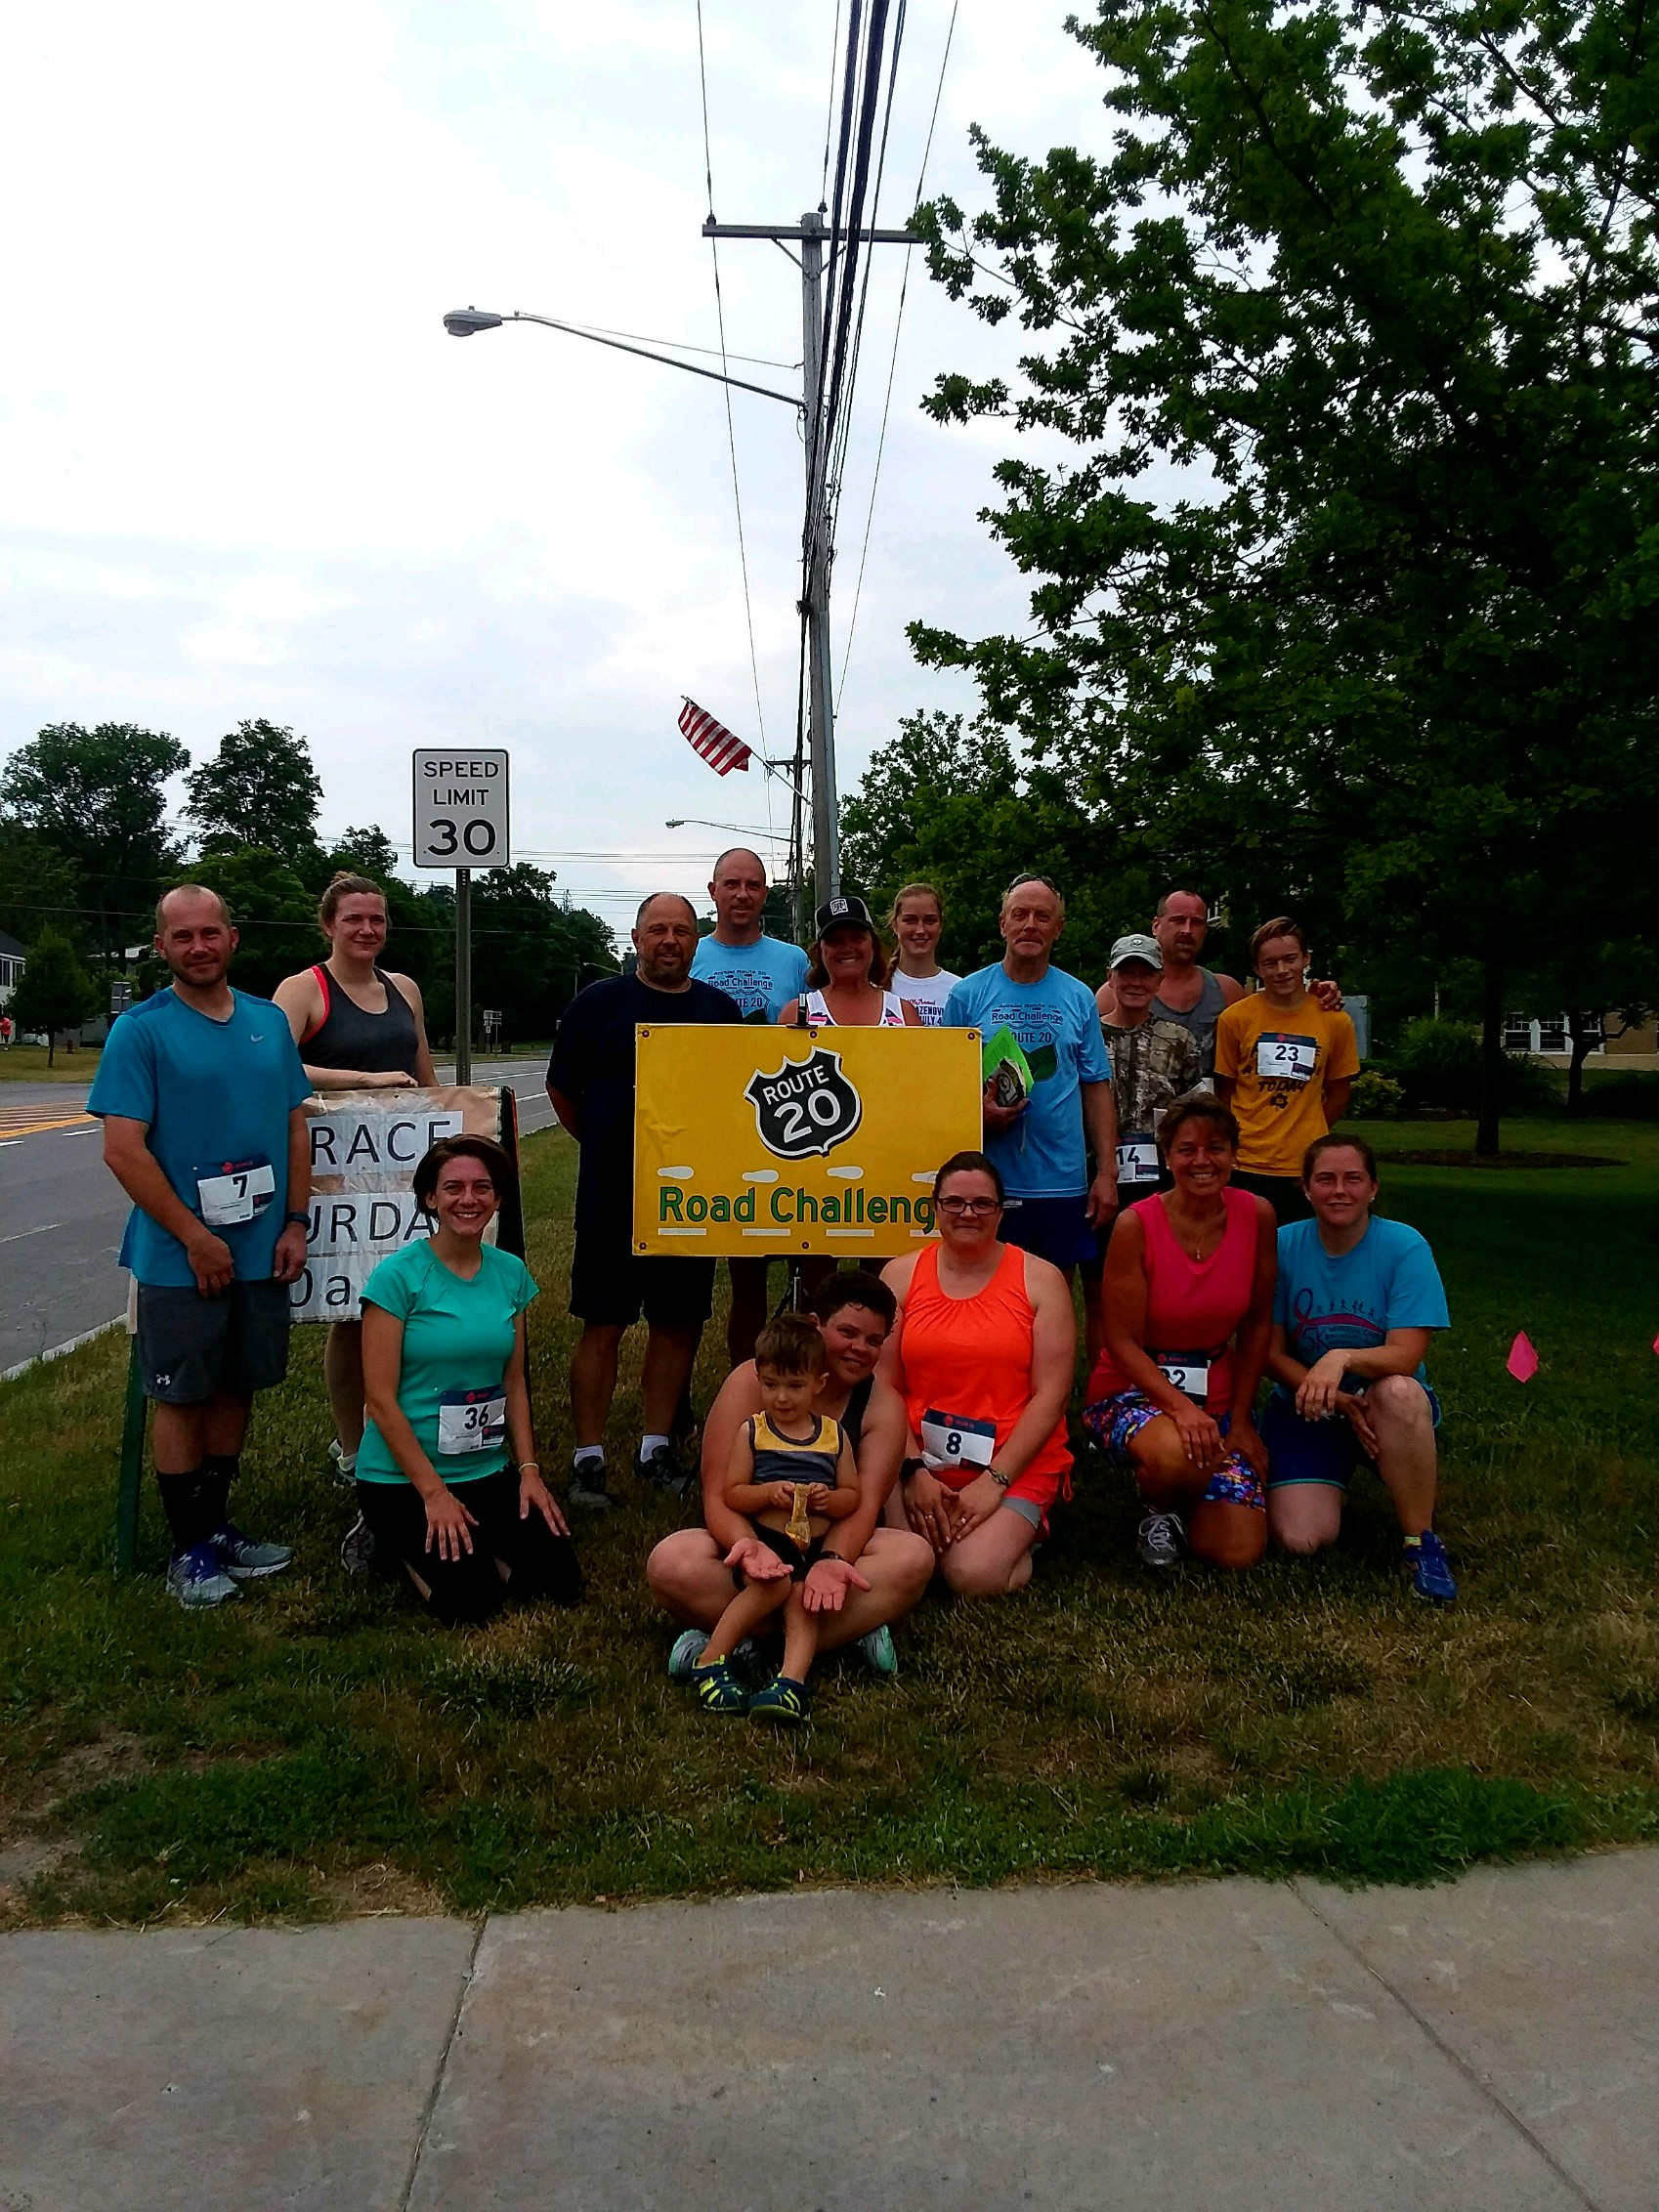 Race Results for the 10TH ANNUAL 5K RACE FOR CHILDRUN